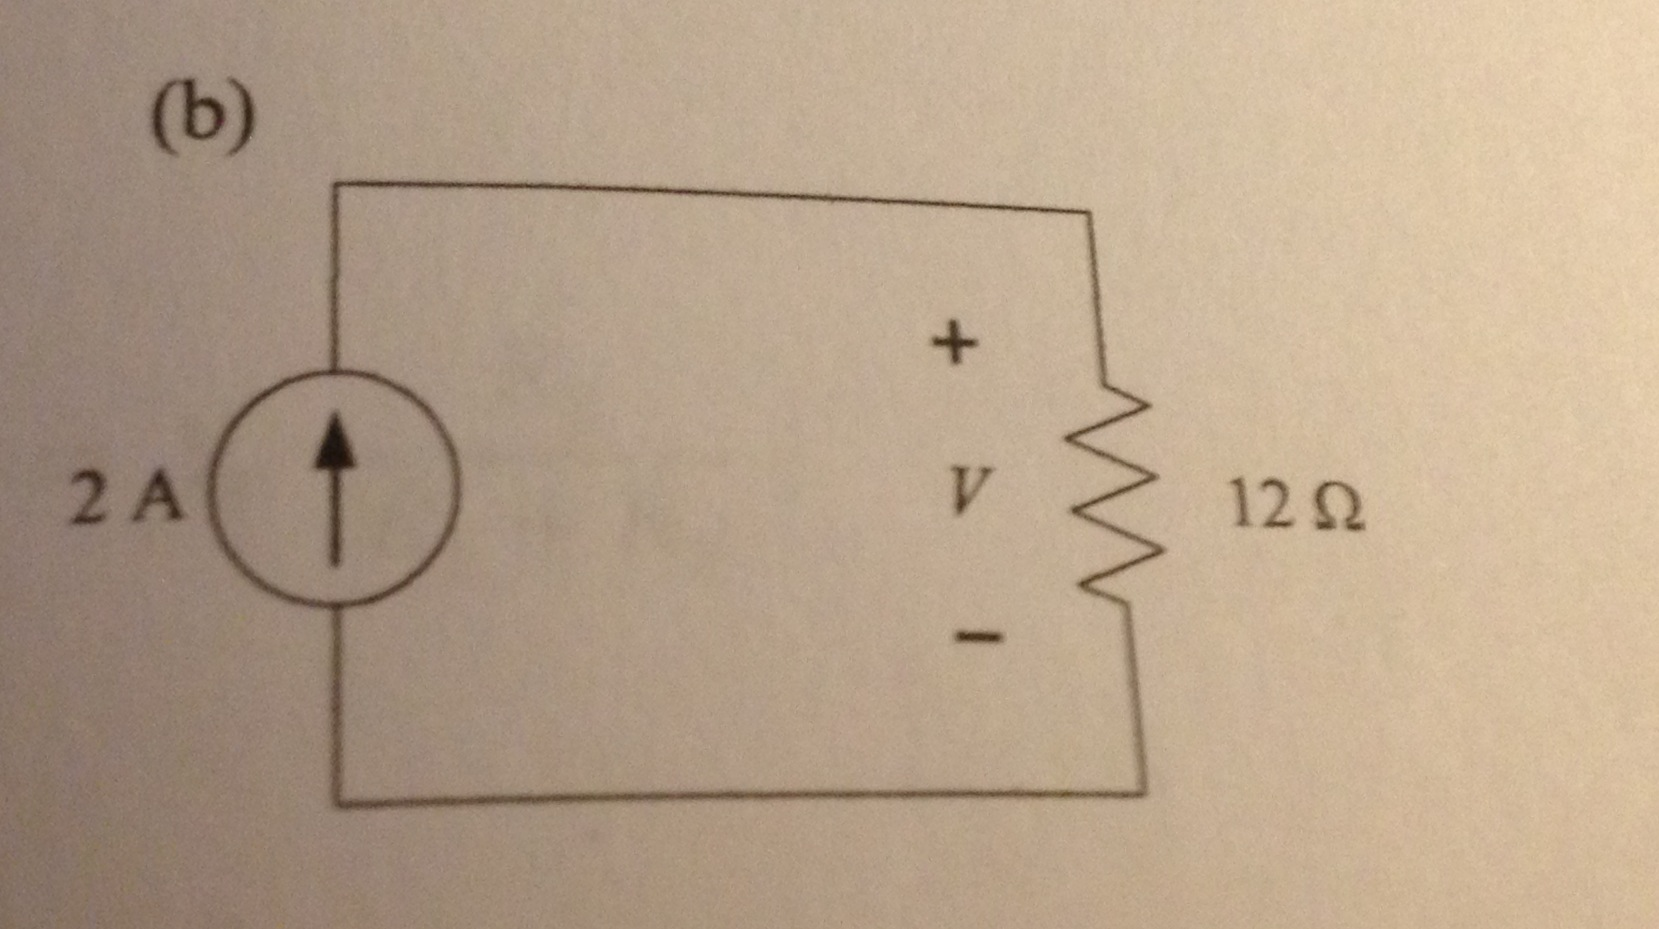 Determine the voltage across t